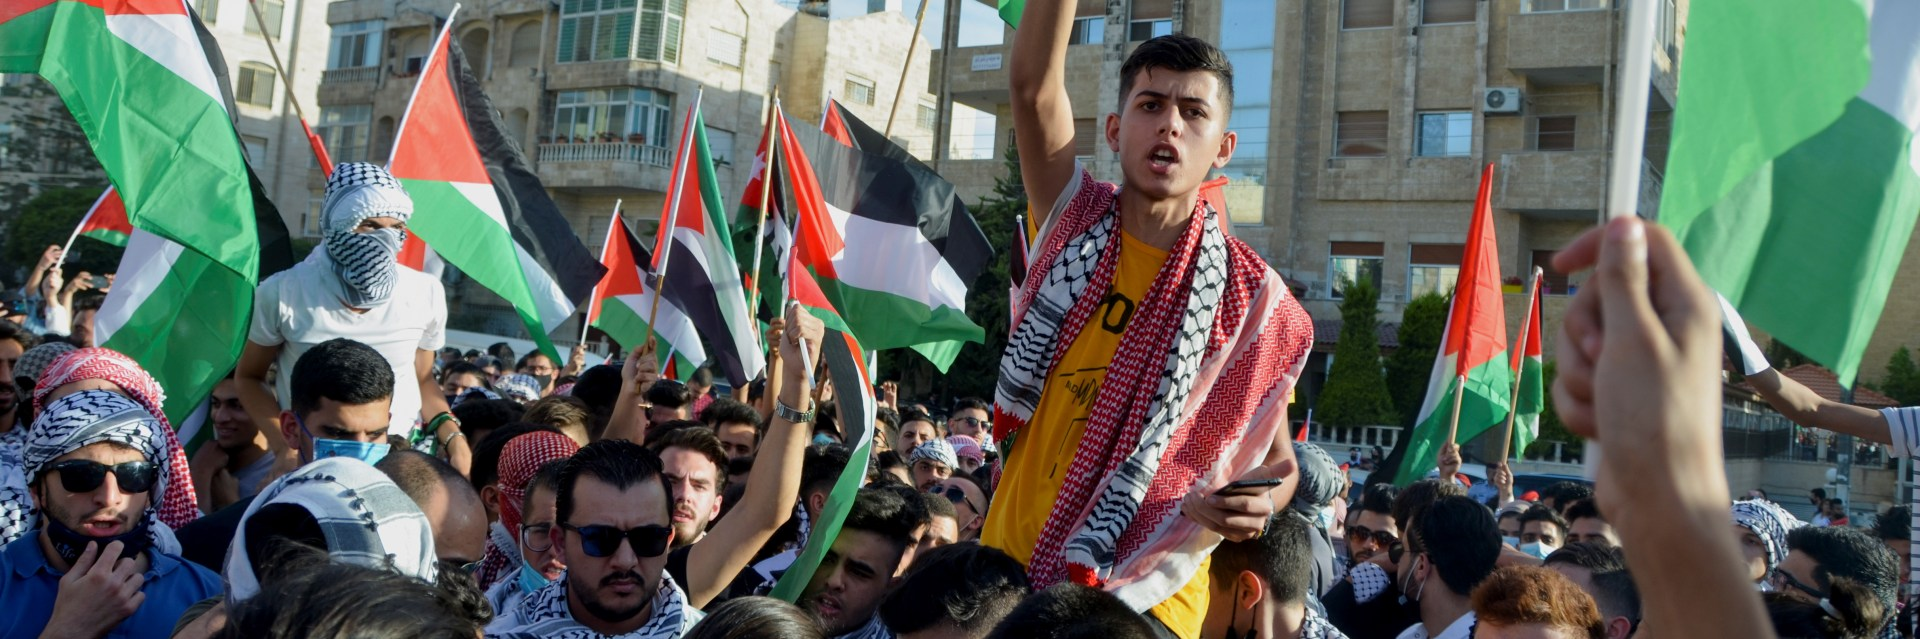 A separate peace? What the Gaza crisis means for Arab regimes